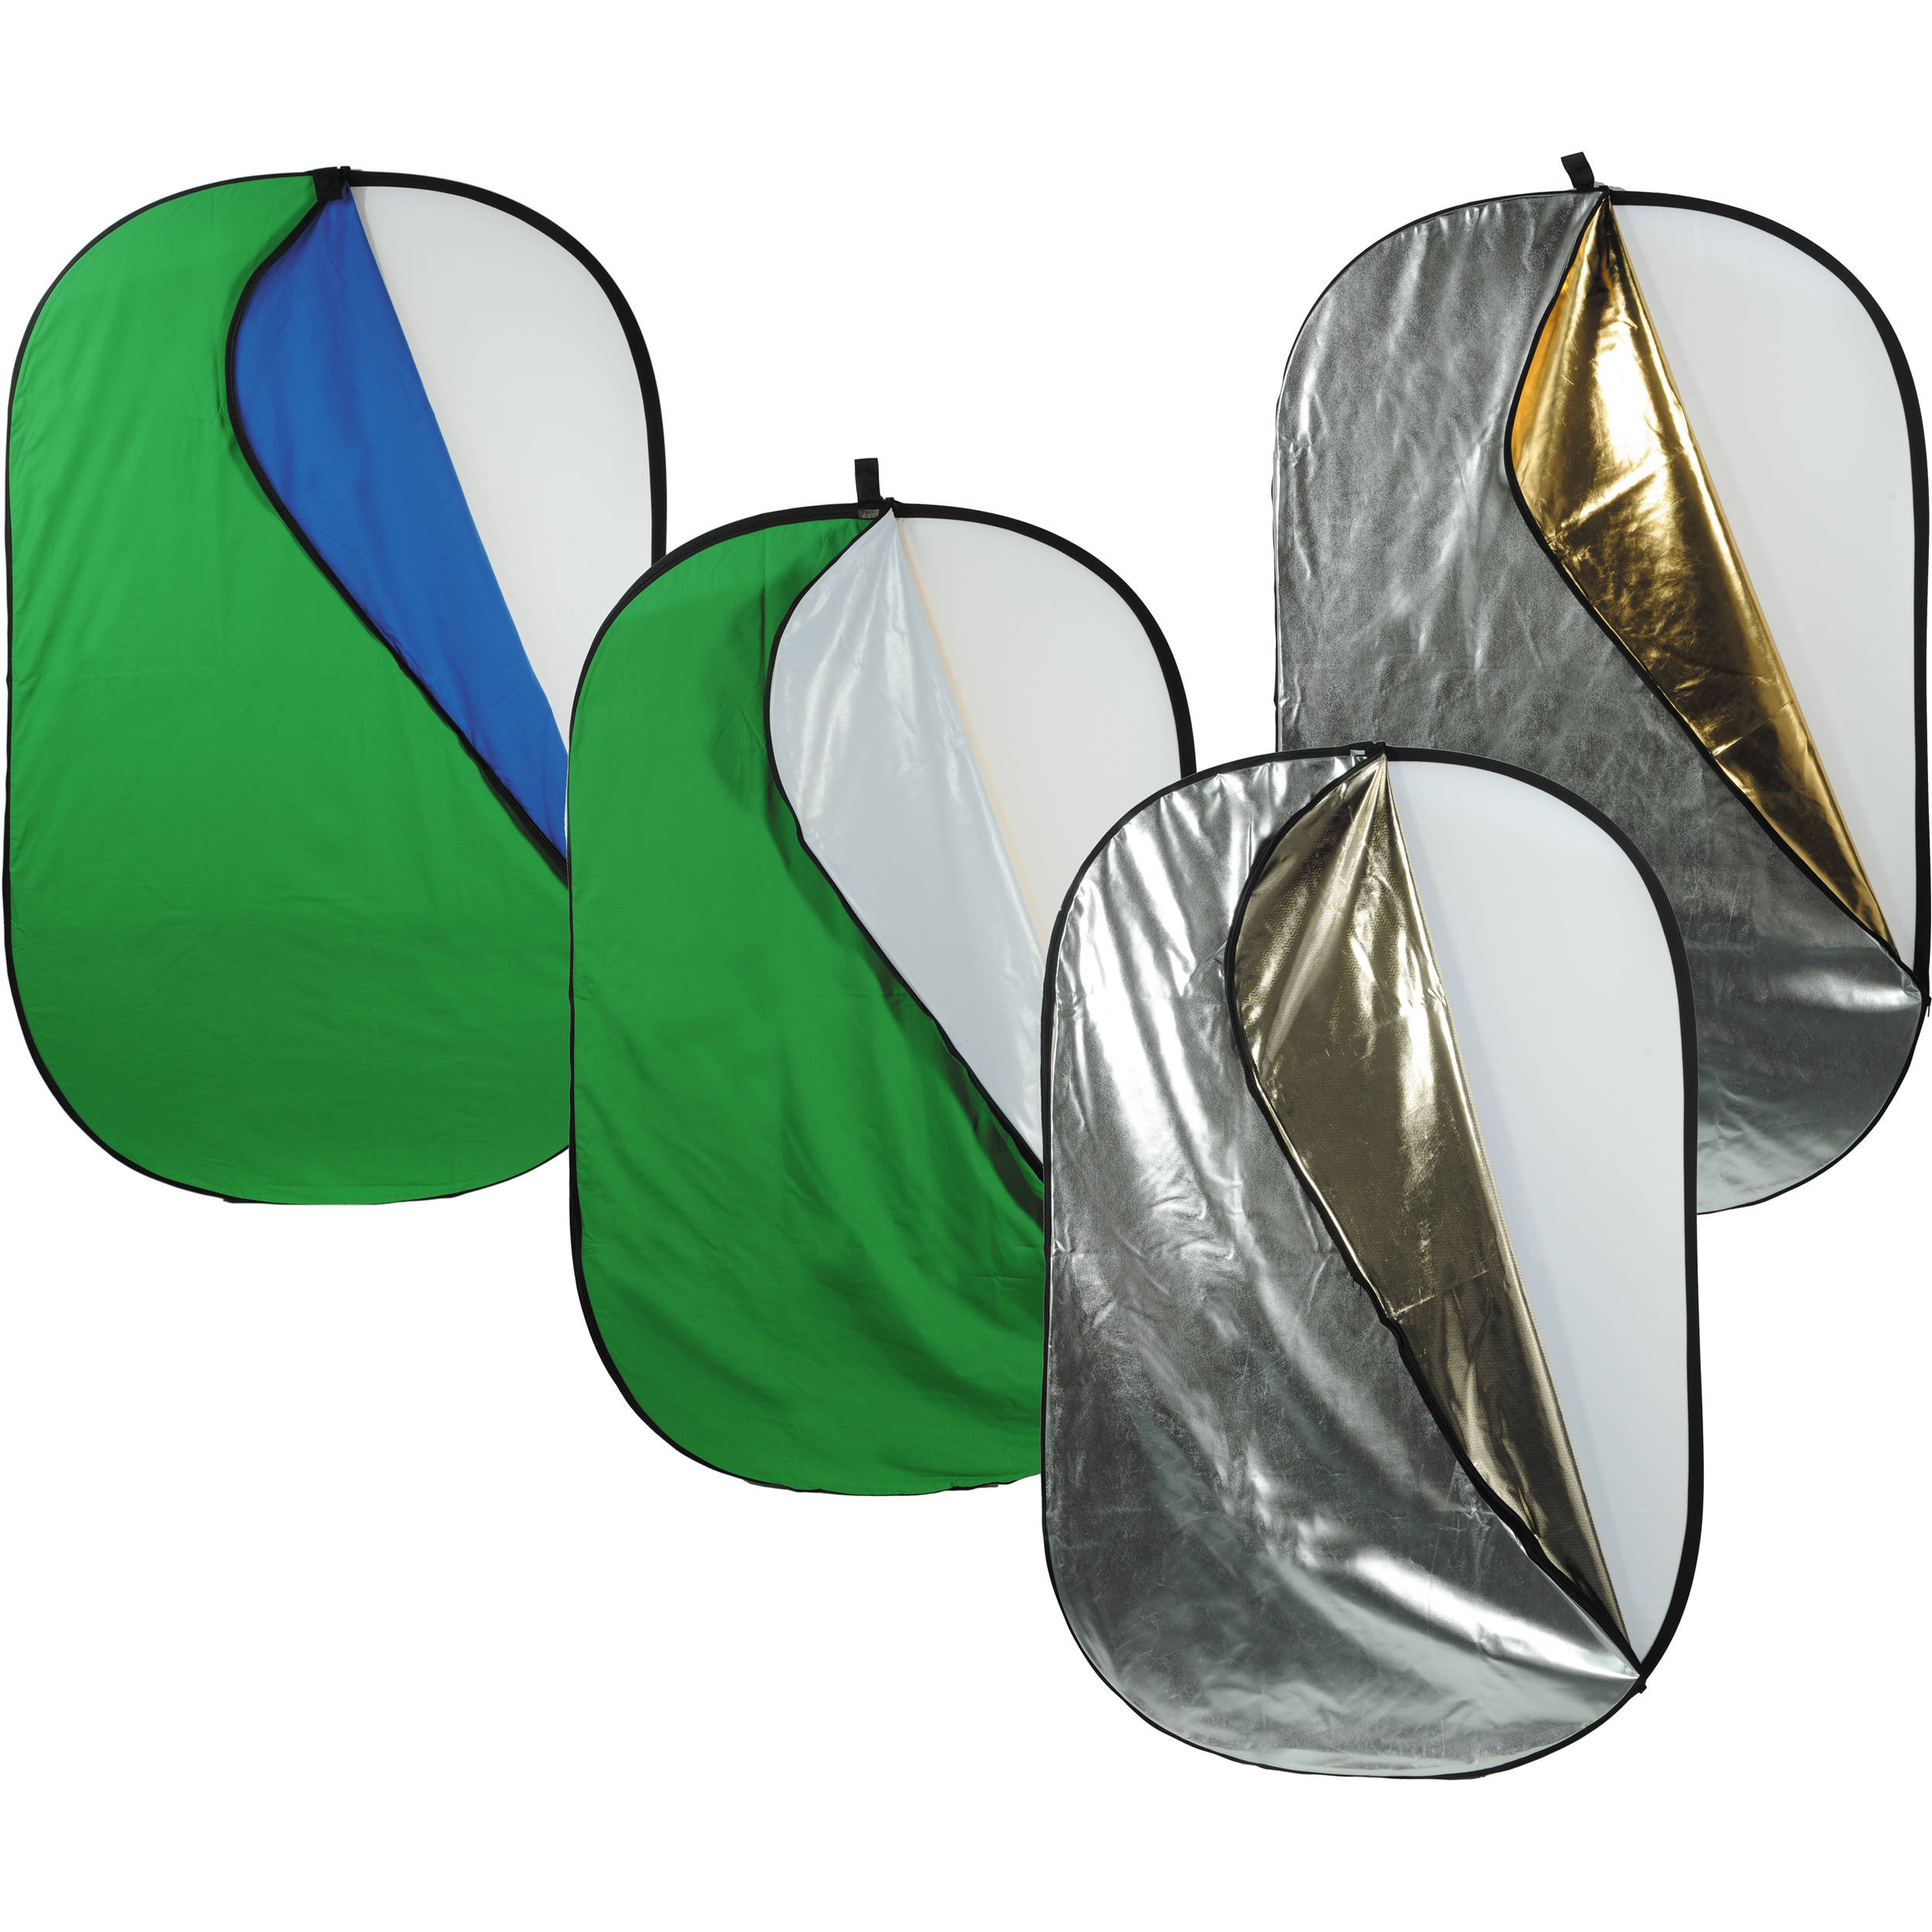 "Impact 7-in-1 Rectangular Reflector Disc (42 x 72"")"